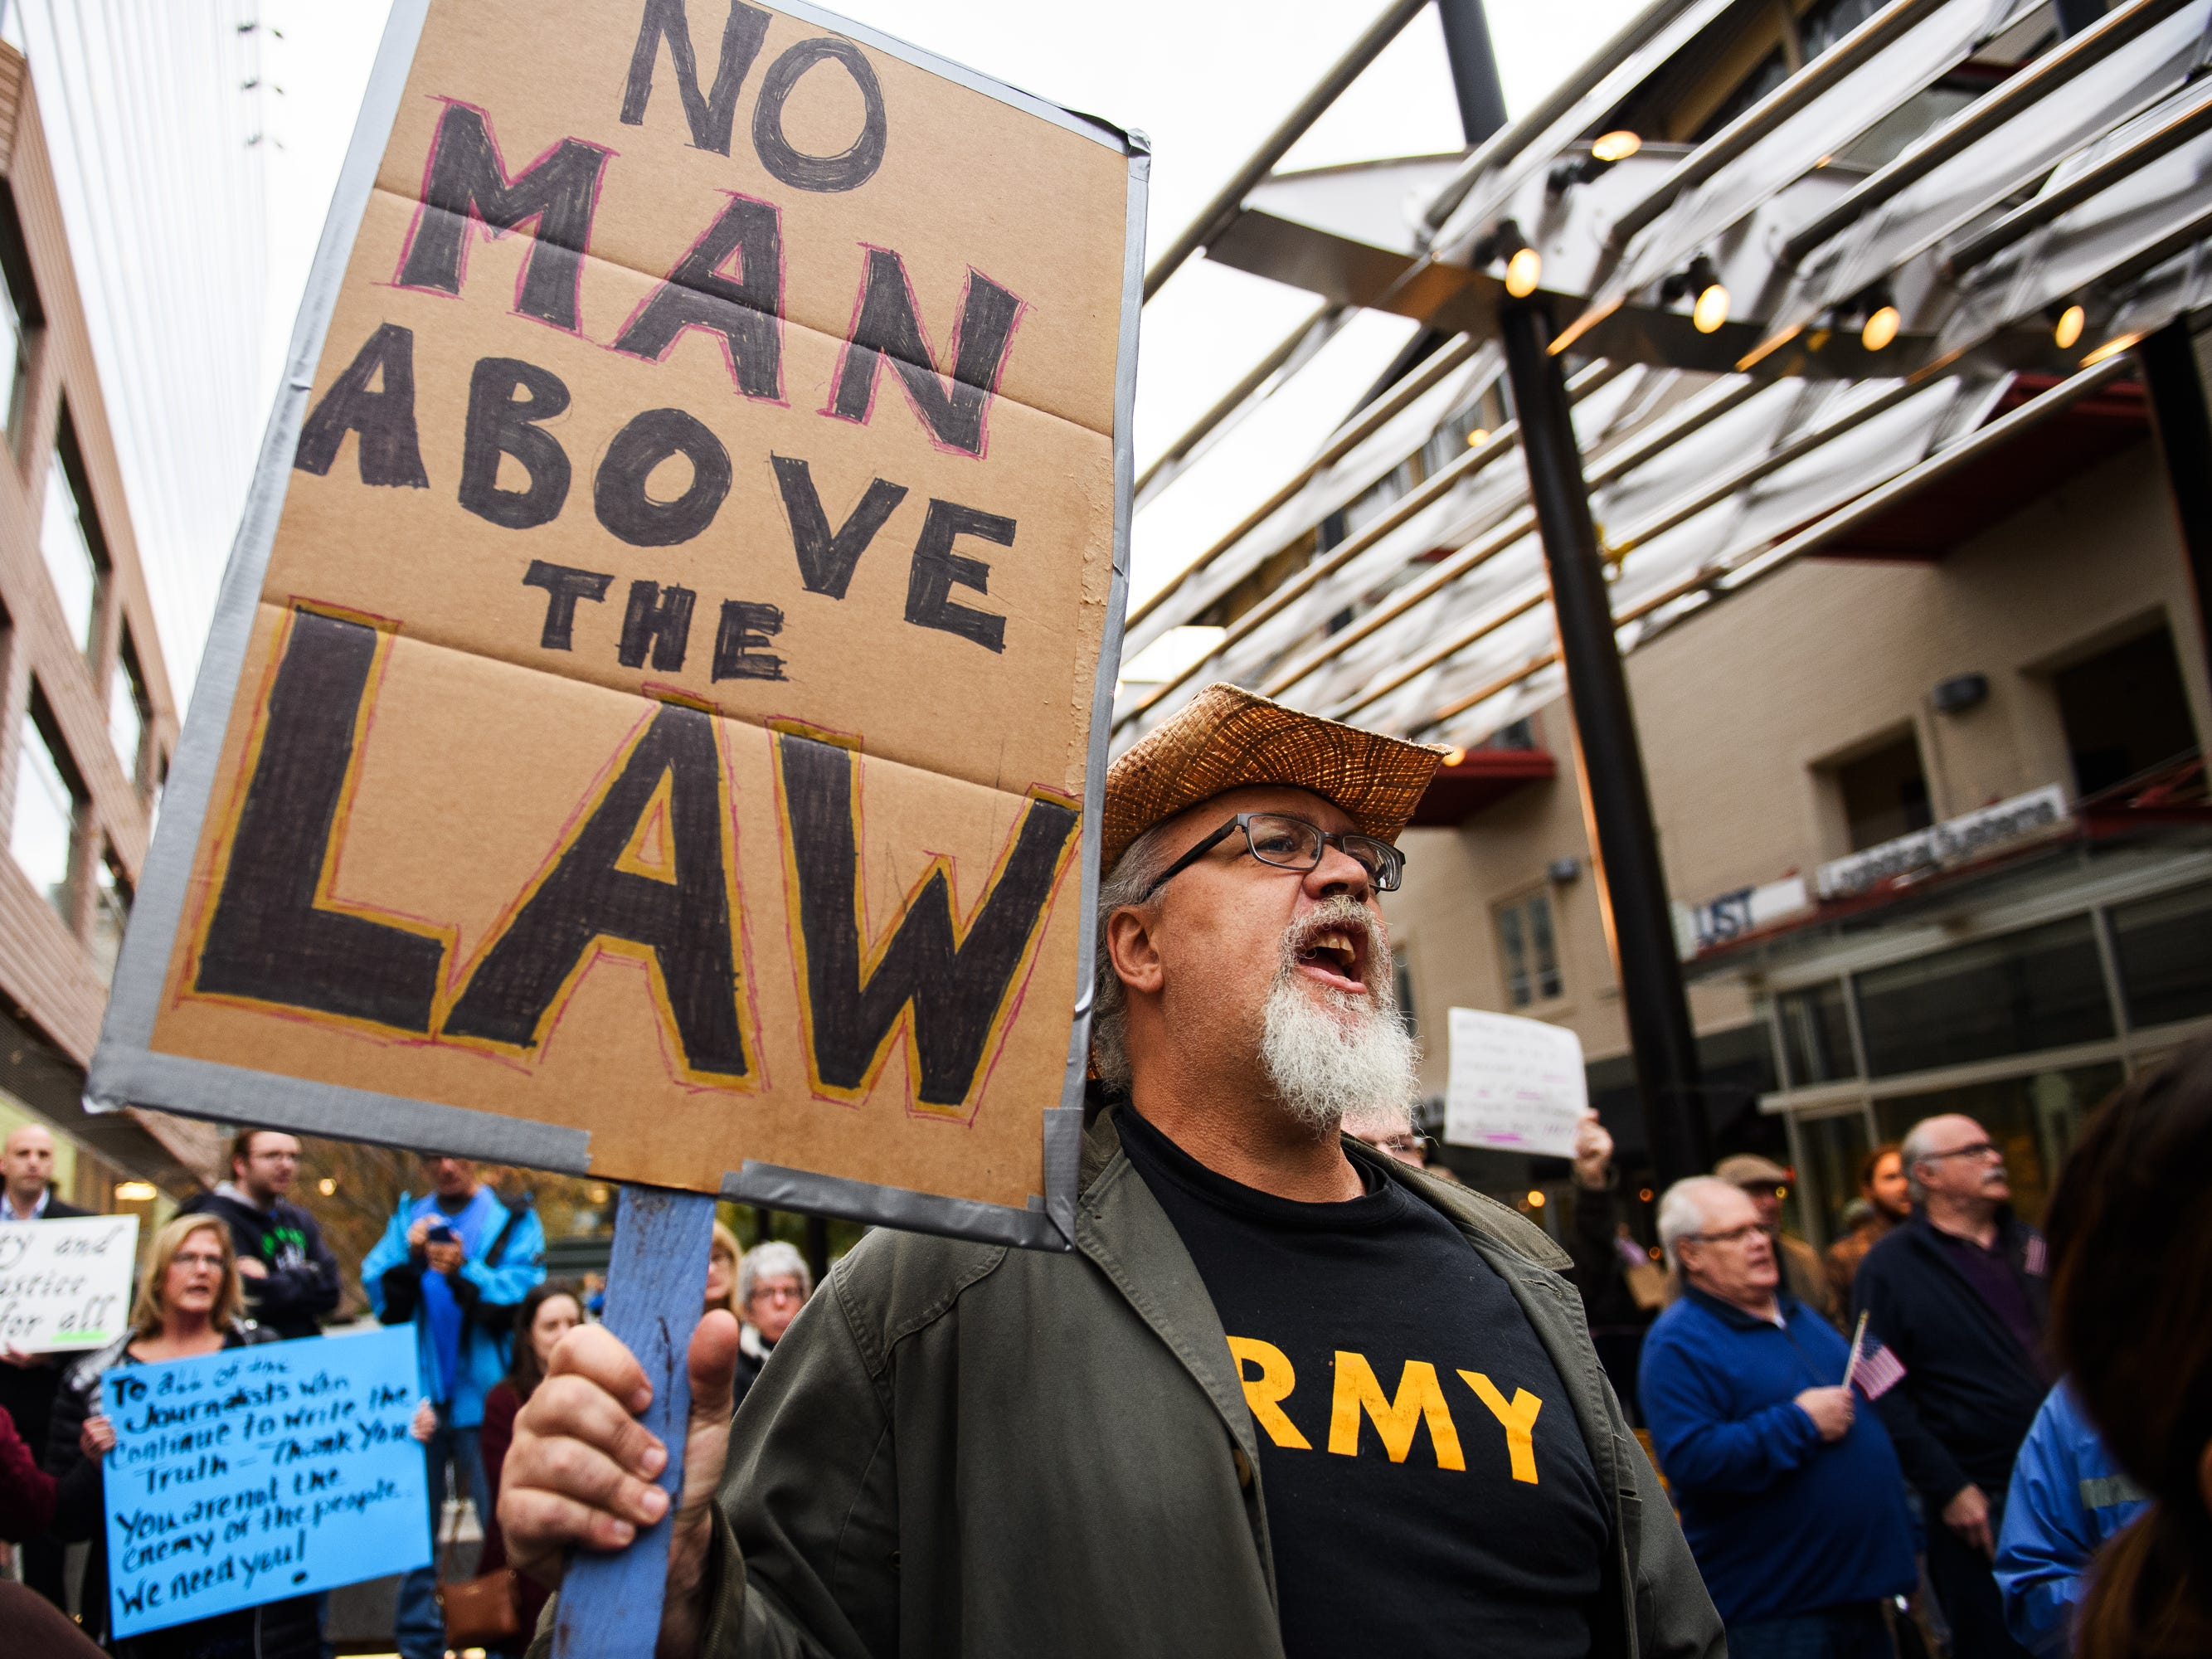 Dan Conover participates in a protest over fears that President Donald Trump is derailing the Mueller investigation at One City Plaza in downtown Greenville on Thursday, Nov 8, 2018.